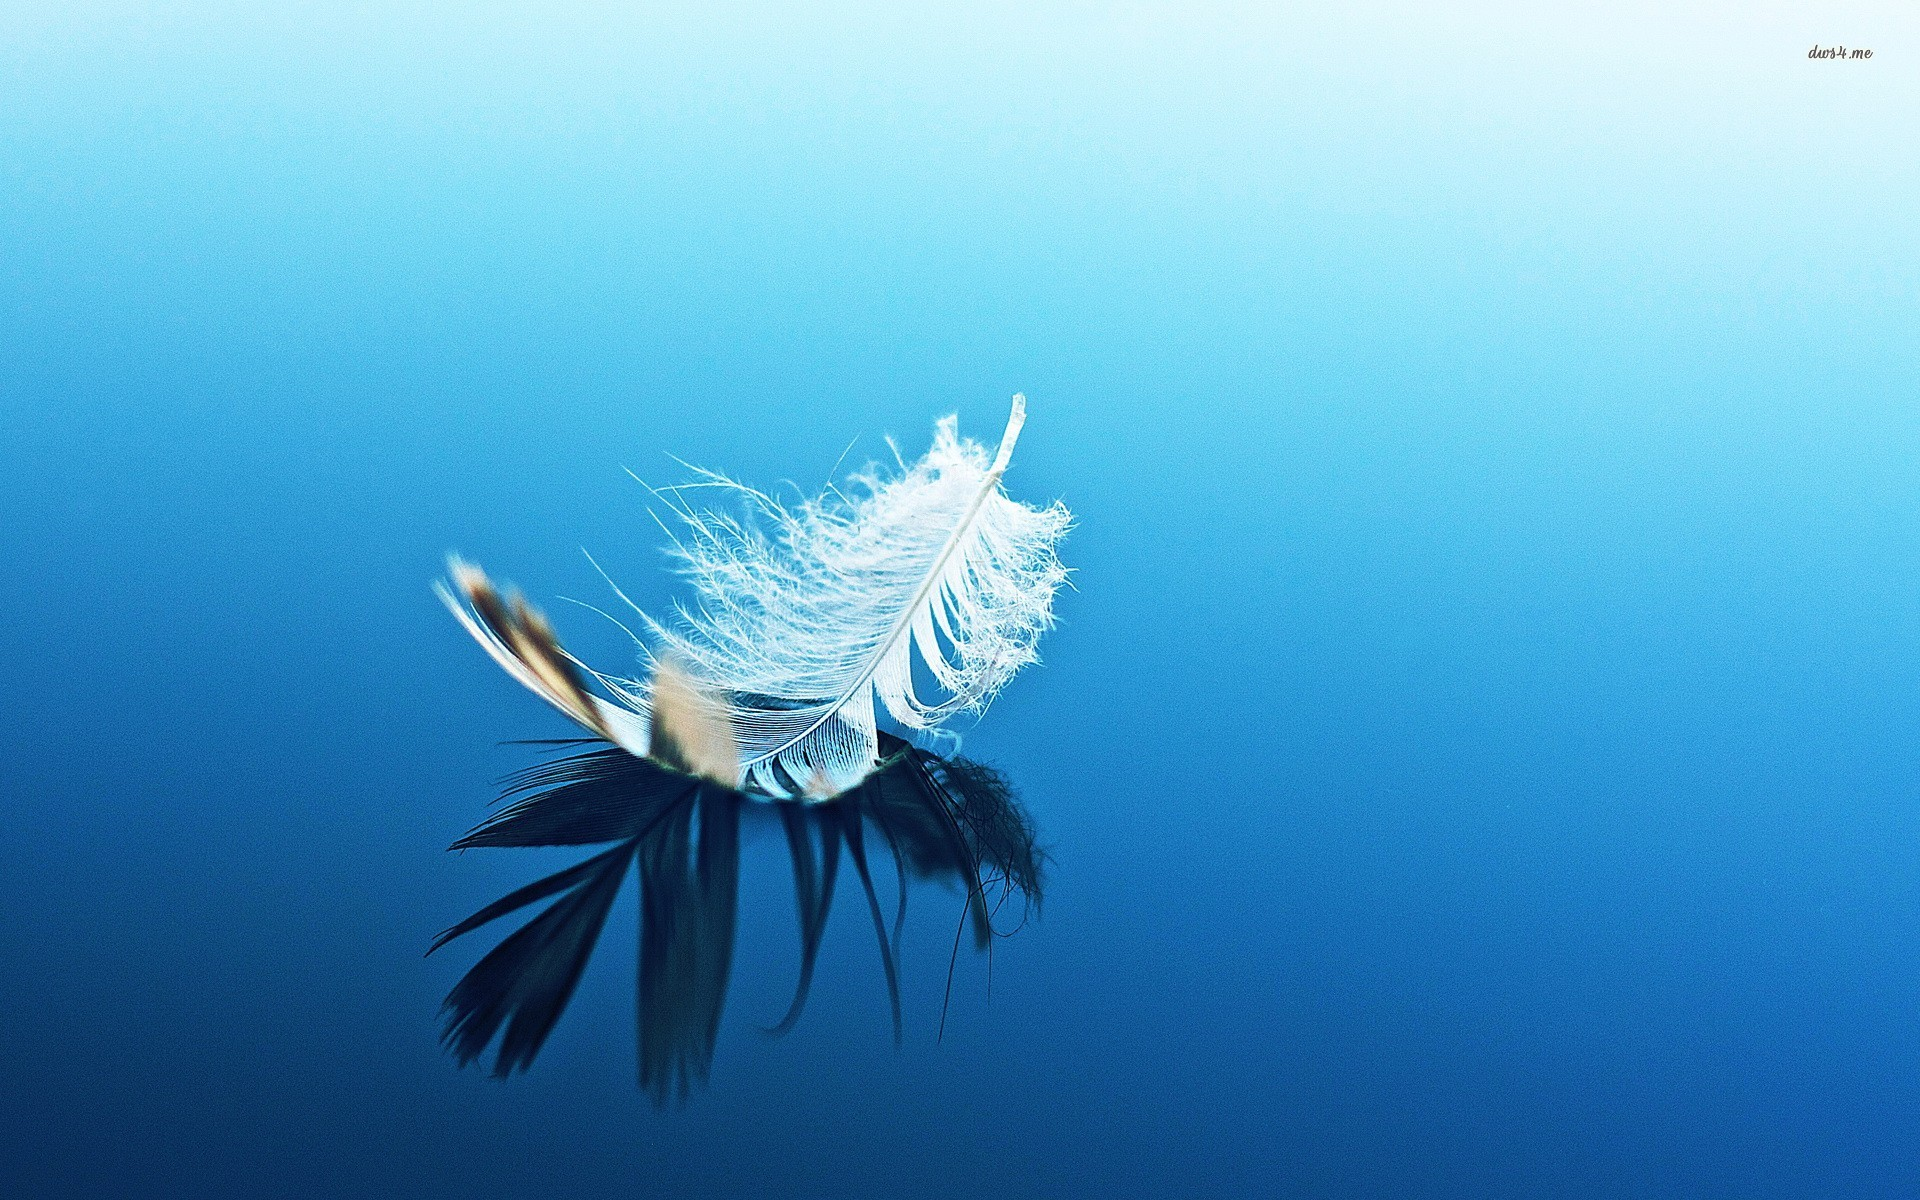 White feather on blue surface wallpaper   Photography wallpapers 1920x1200